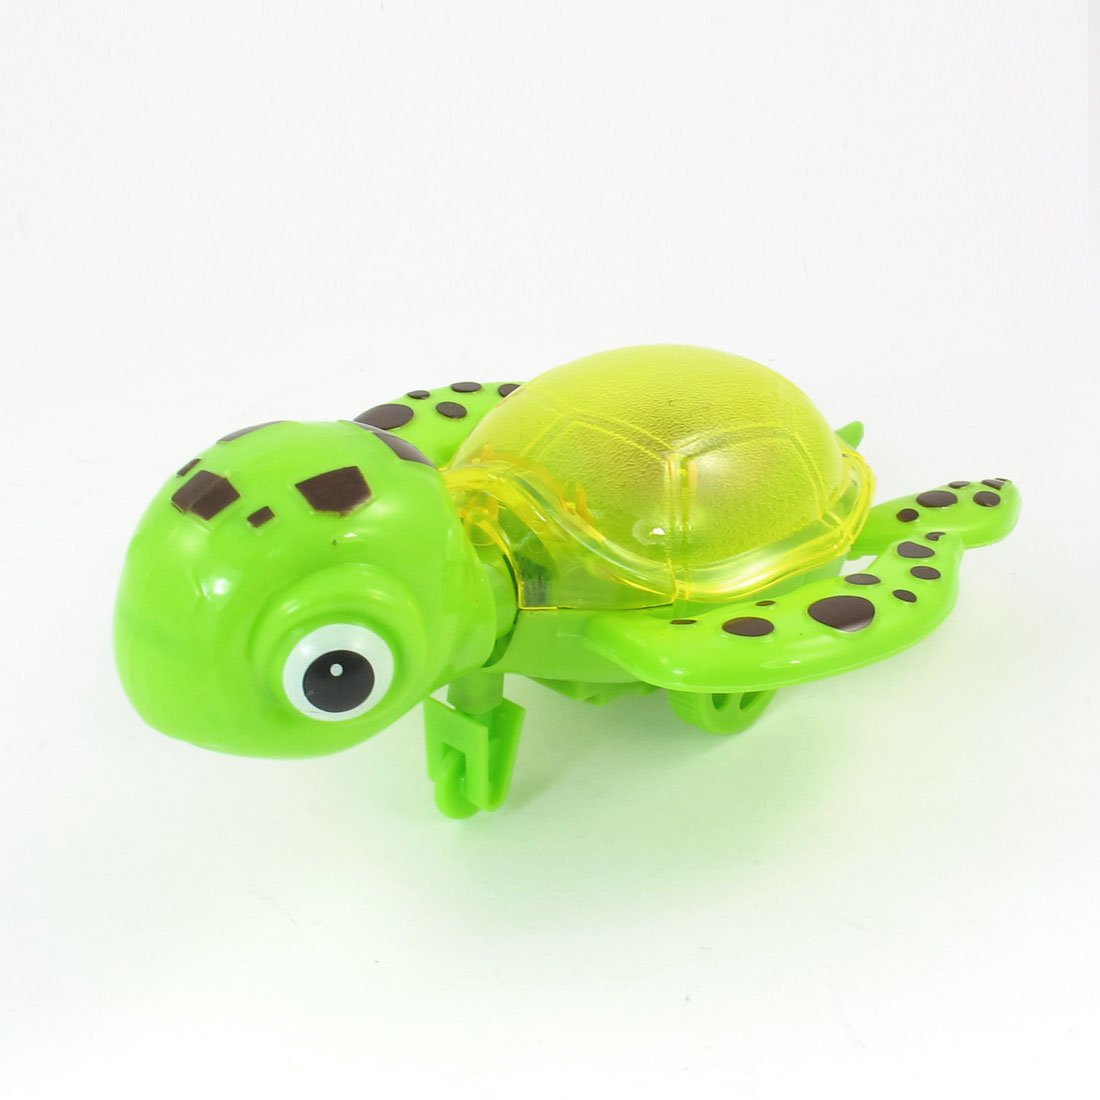 Green Black Yellow Body Tail Pull String Plastic Tortoise Toy Gift for Kids